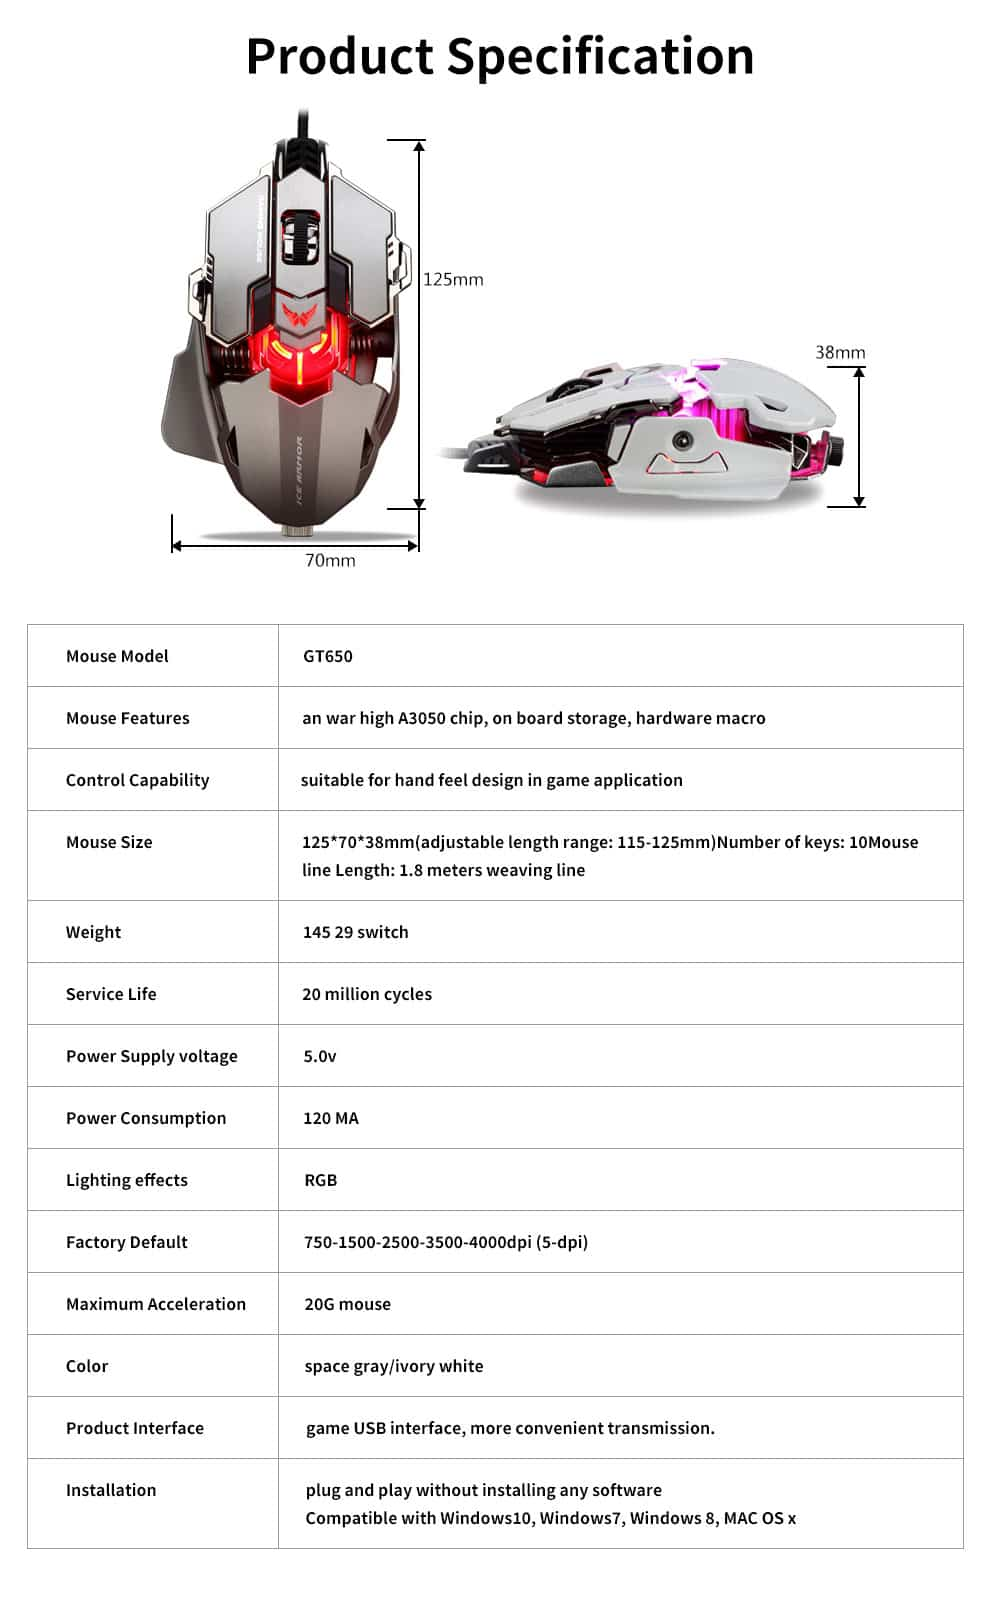 5 Key Esports Game Cool Mouse, Gaming Mouse With Two Modes and 10MM Hand Distance Support for Computer, PC, Laptop, MacBook 5